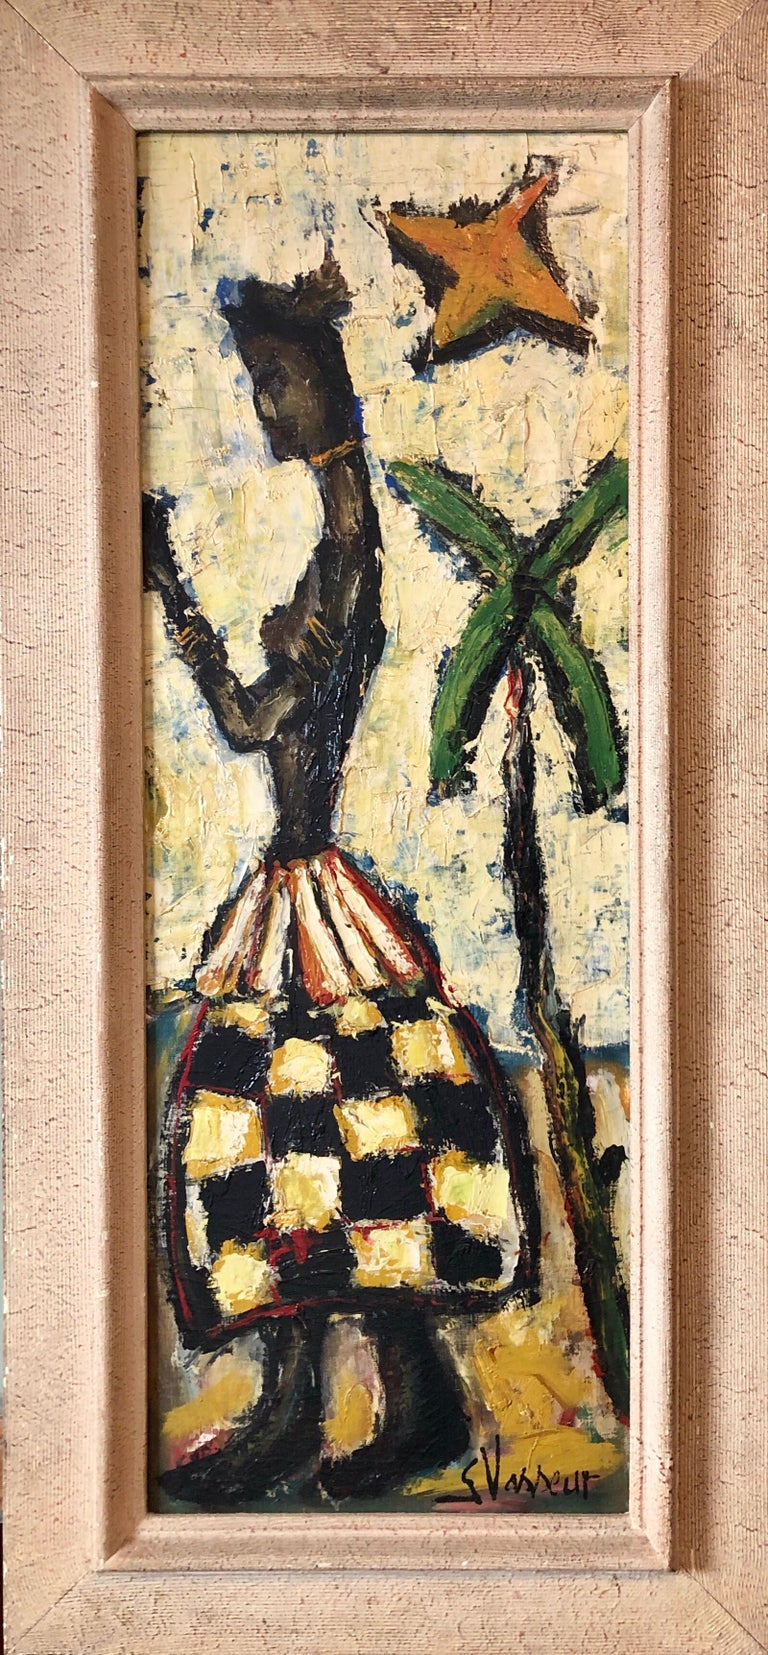 Georges Vasseur Nude Painting - French Expressionist Impasto Oil Painting African Island Girl Kente Cloth Skirt